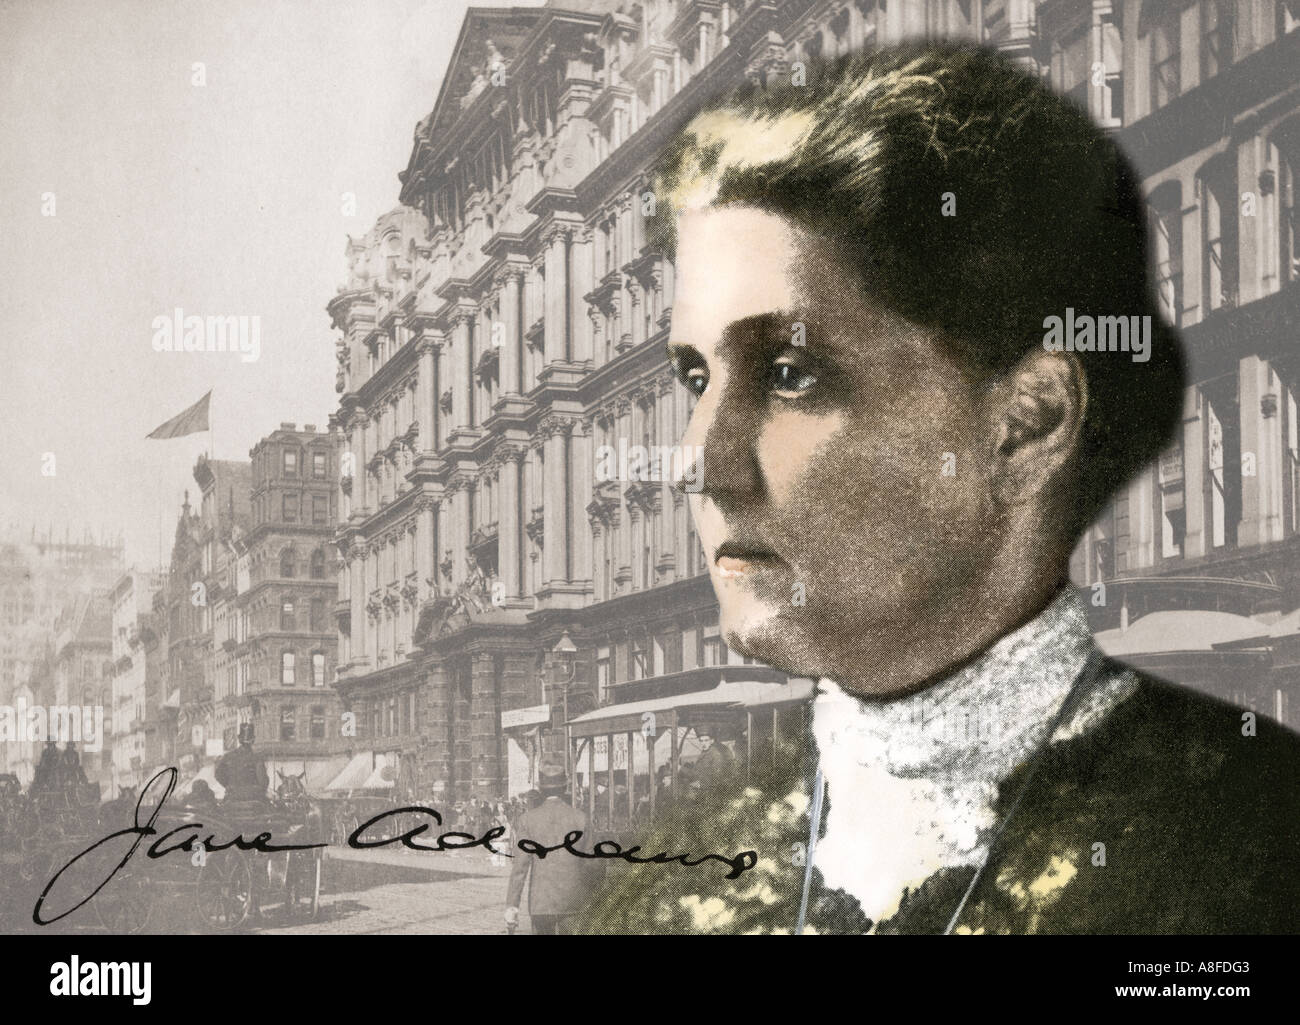 Social reformer Jane Addams against a background photo of downtown Chicago in the 1890s. Hand-colored halftone combined with an antique photograph - Stock Image